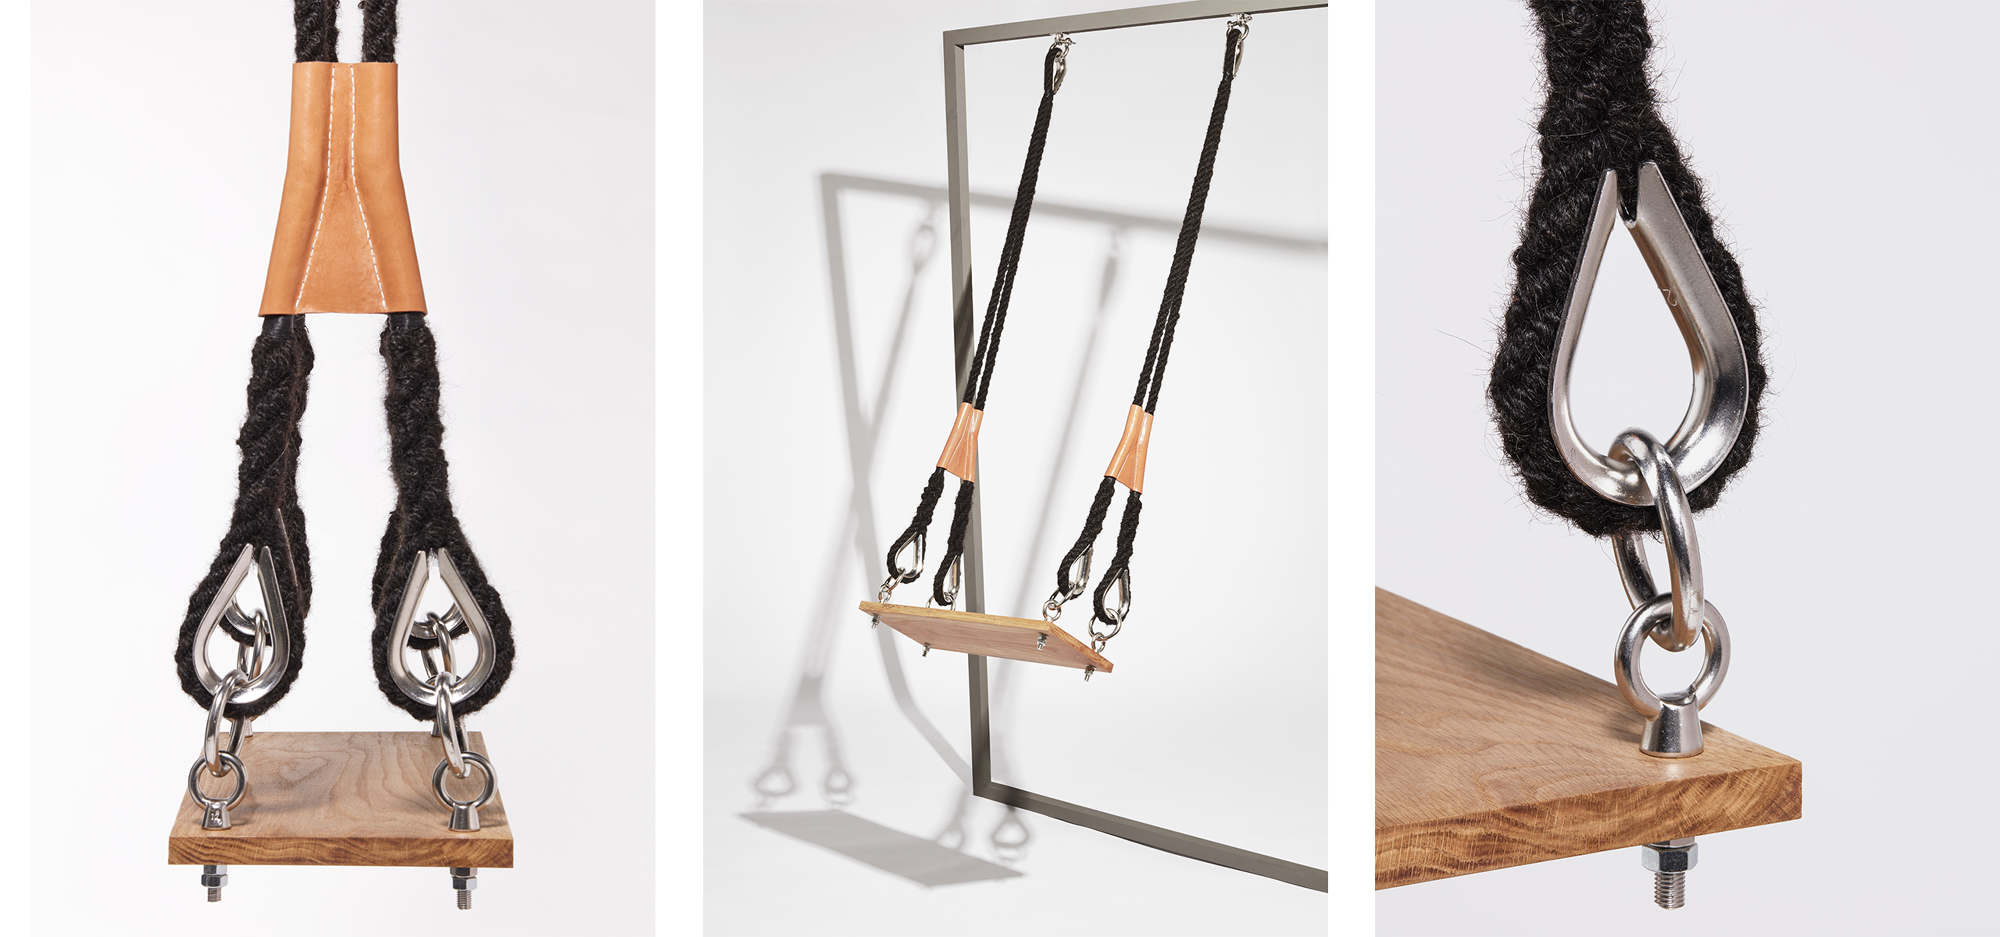 ' The Swing ' by Sanne Visser,as seen at Milan Design Week, at the  Age of Man  exhibition.